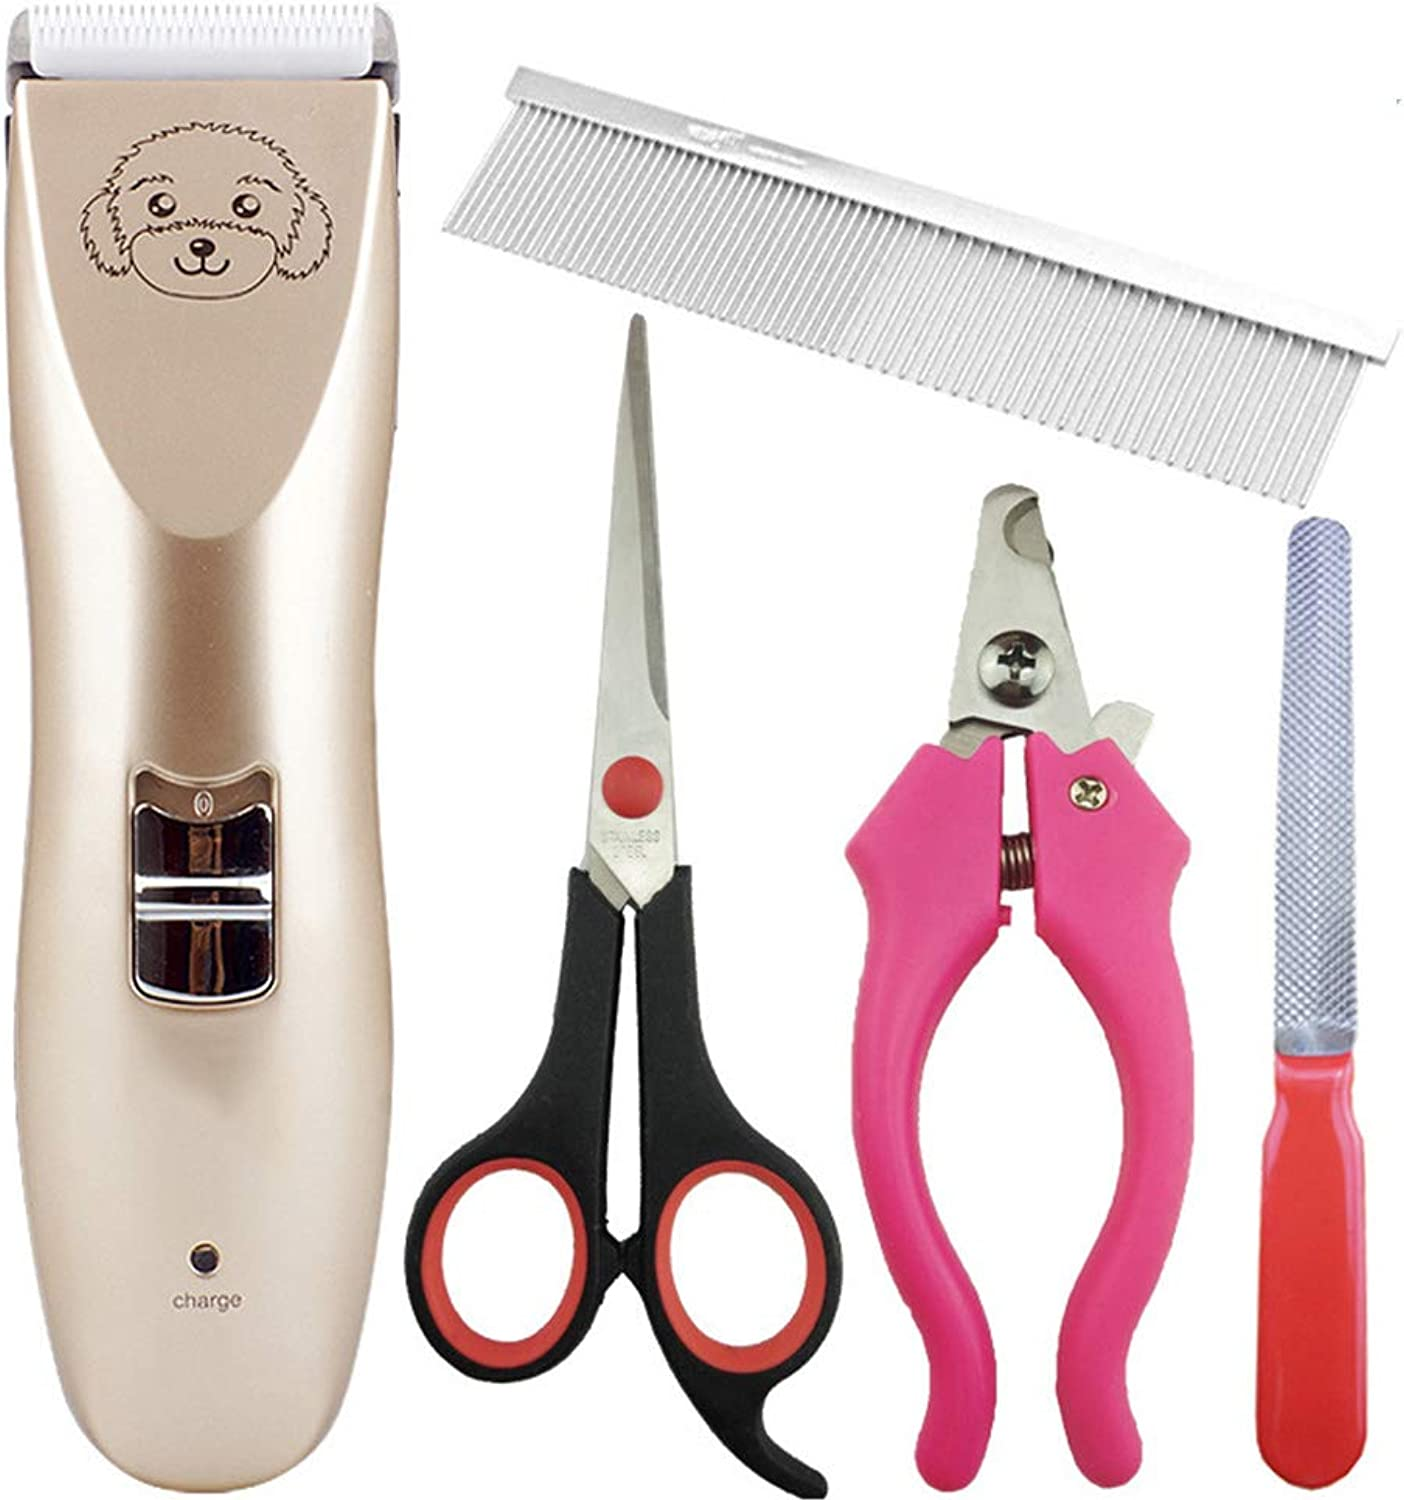 Dog Clippers Grooming Set, Quiet and Comfortable Fur Clipping Set from Trims Fur on Dogs,Cats Other Family Pets